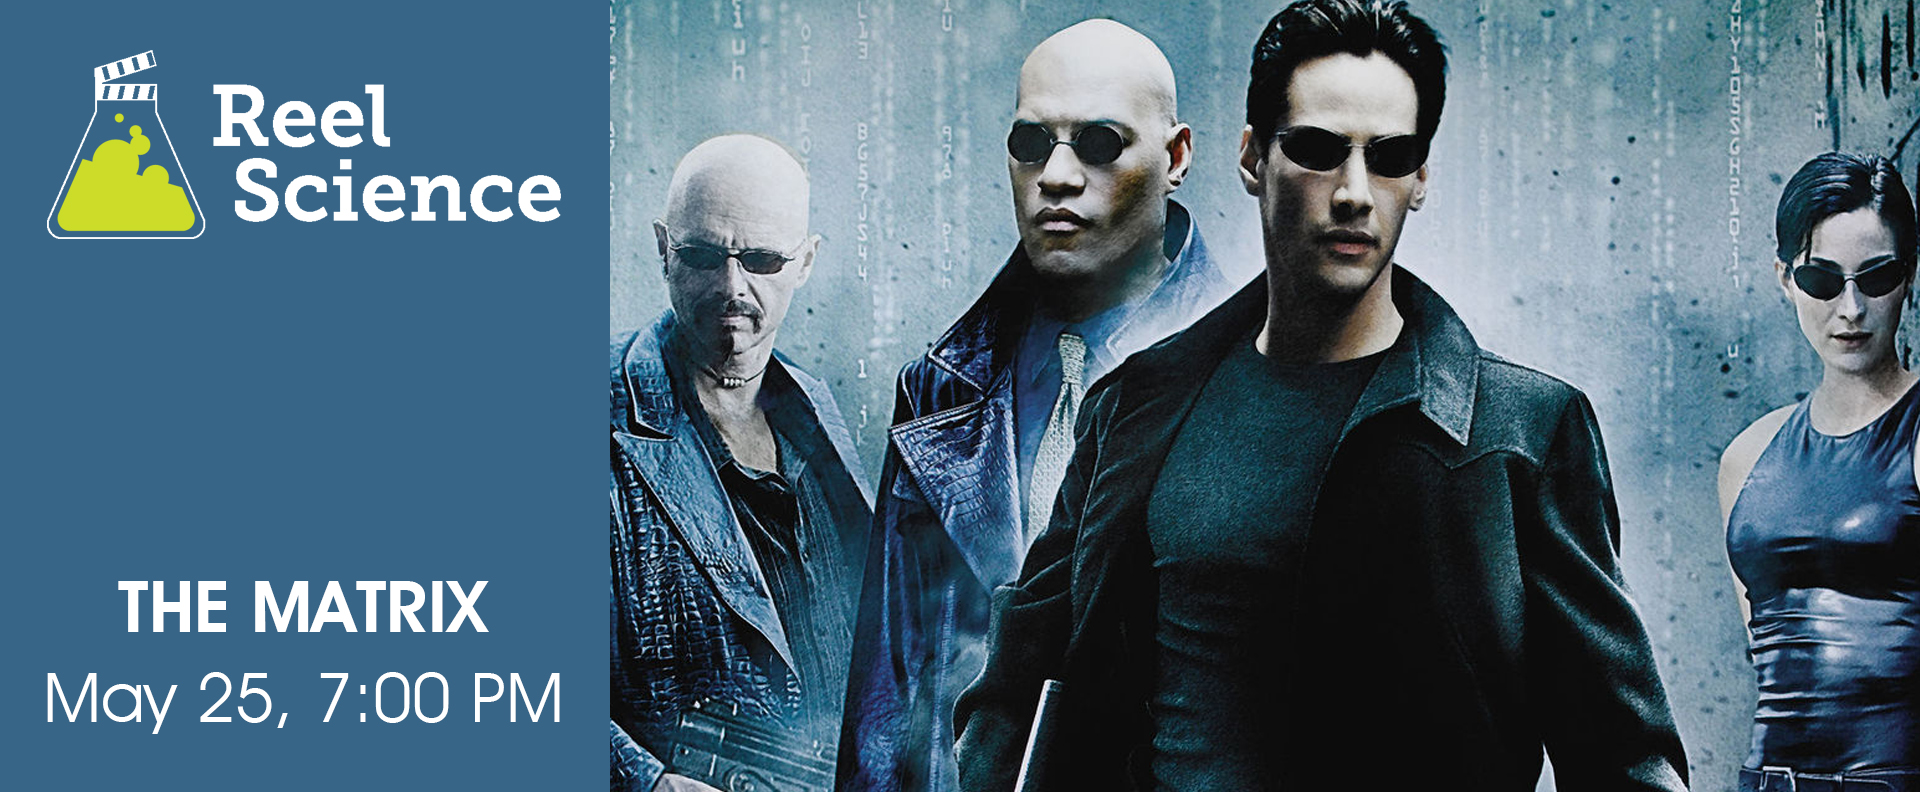 Reel Science Film Series: The Matrix (May 25)